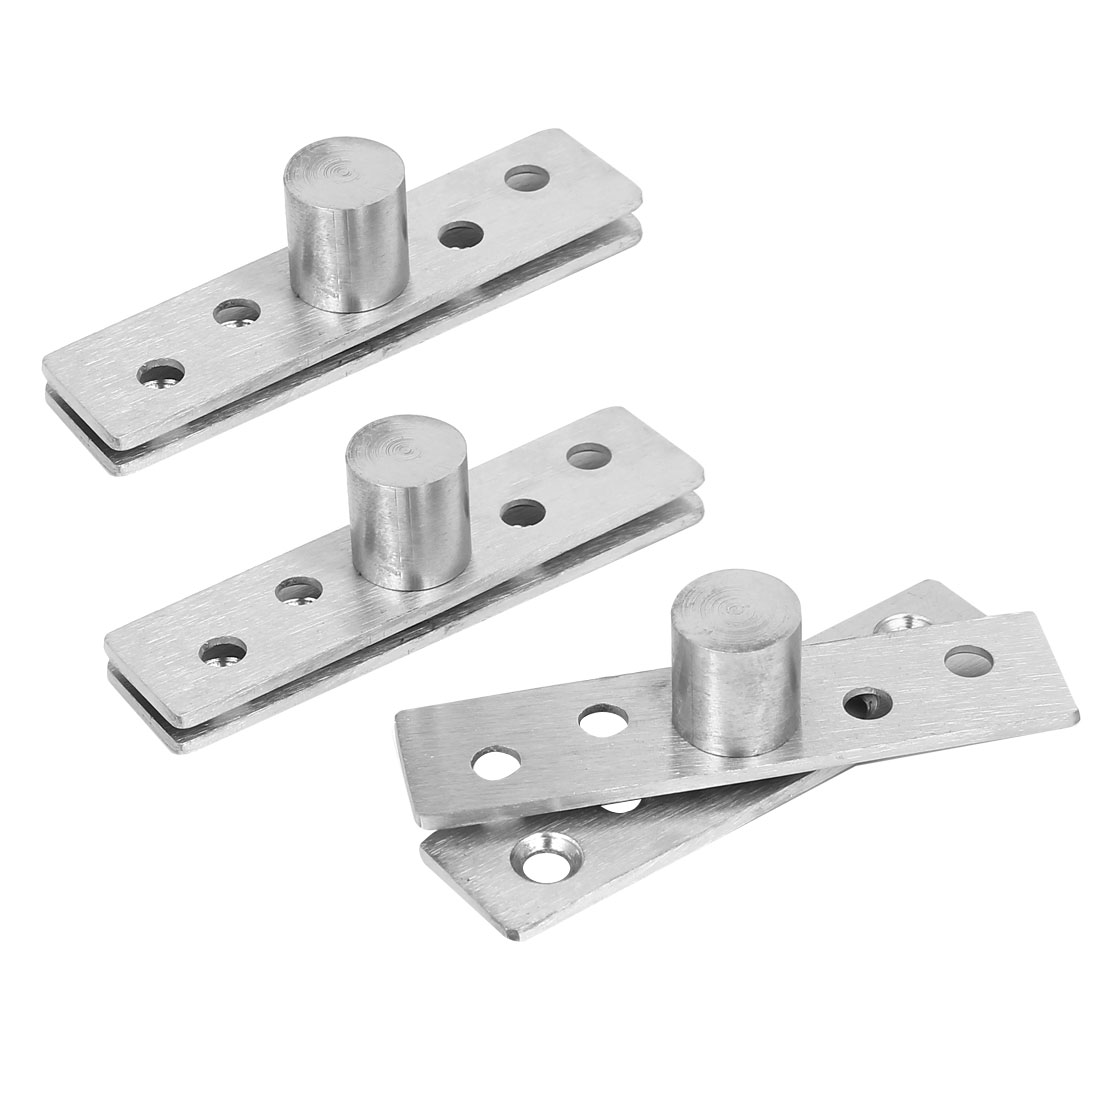 75mm Length 360 Degree Rotation Hidden Stainless Steel Wooden Door Pivot Hinges 3pcs